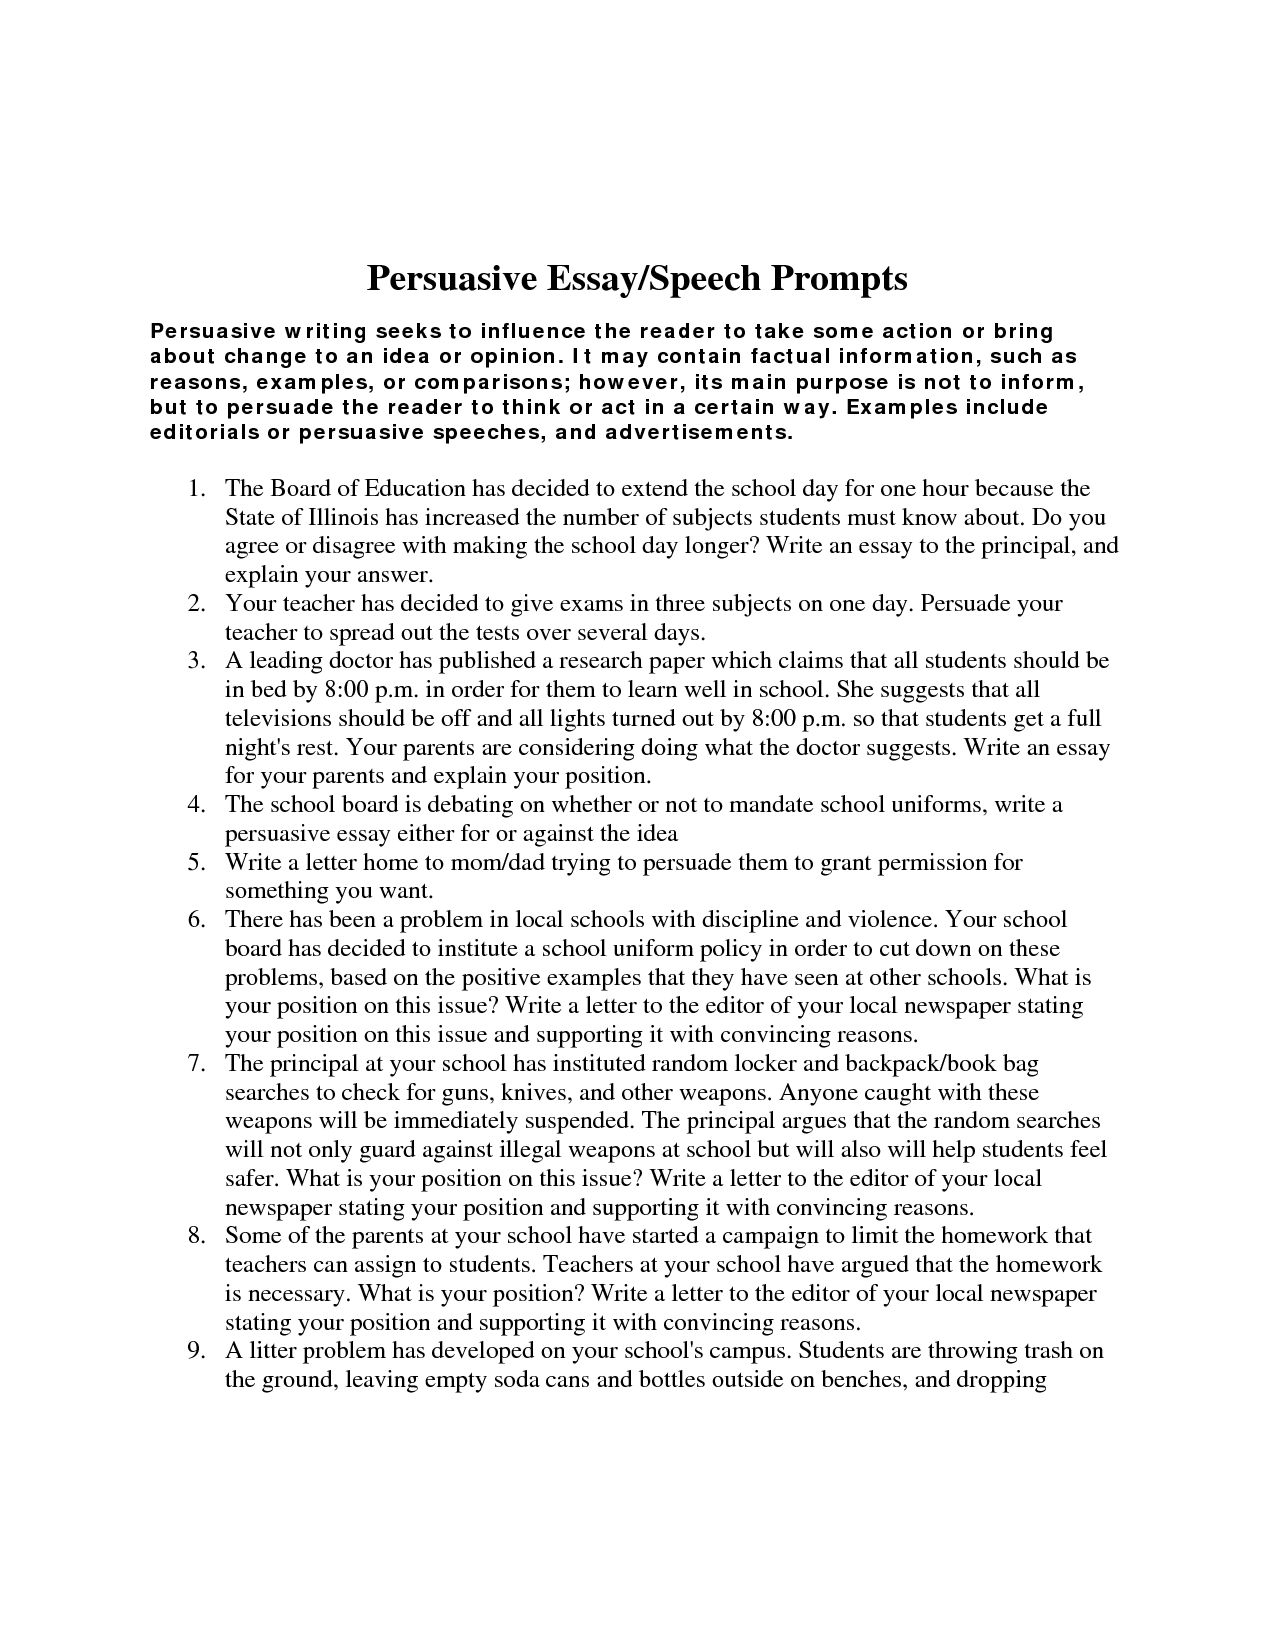 Persuasive Essay Topics For High School Persuasive And Argumentative Writing Examples Of Persuasive Essays For High School also Good Science Essay Topics Persuasive And Argumentative Writing  Argumentative Essay  Essay Topics For High School English